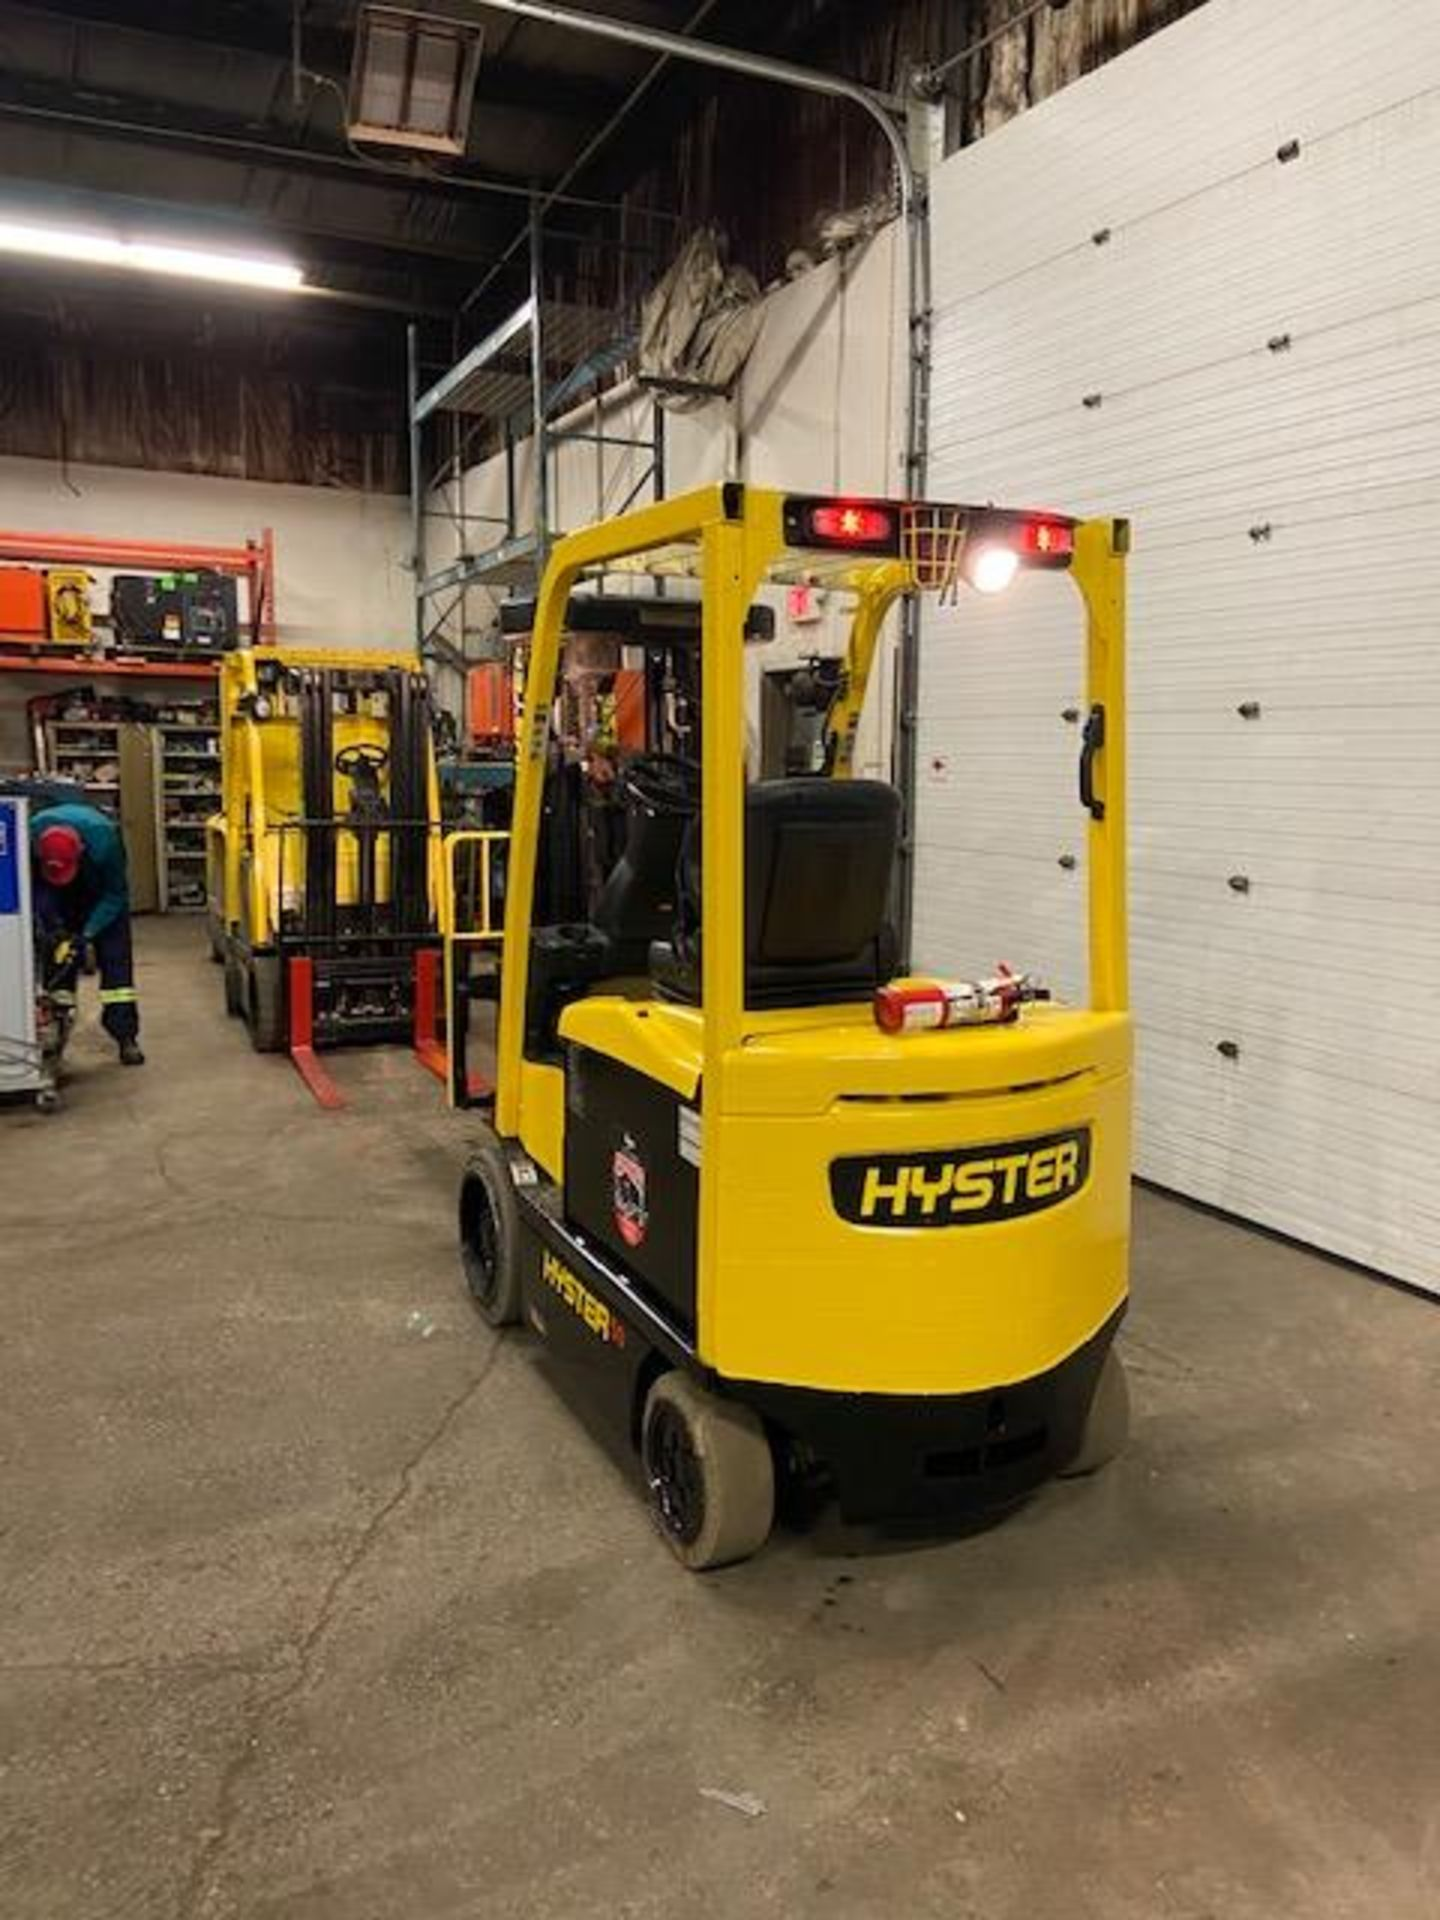 FREE CUSTOMS - 2014 Hyster 5000lbs Capacity Forklift Electric with 4-STAGE MAST with sideshift & - Image 4 of 4